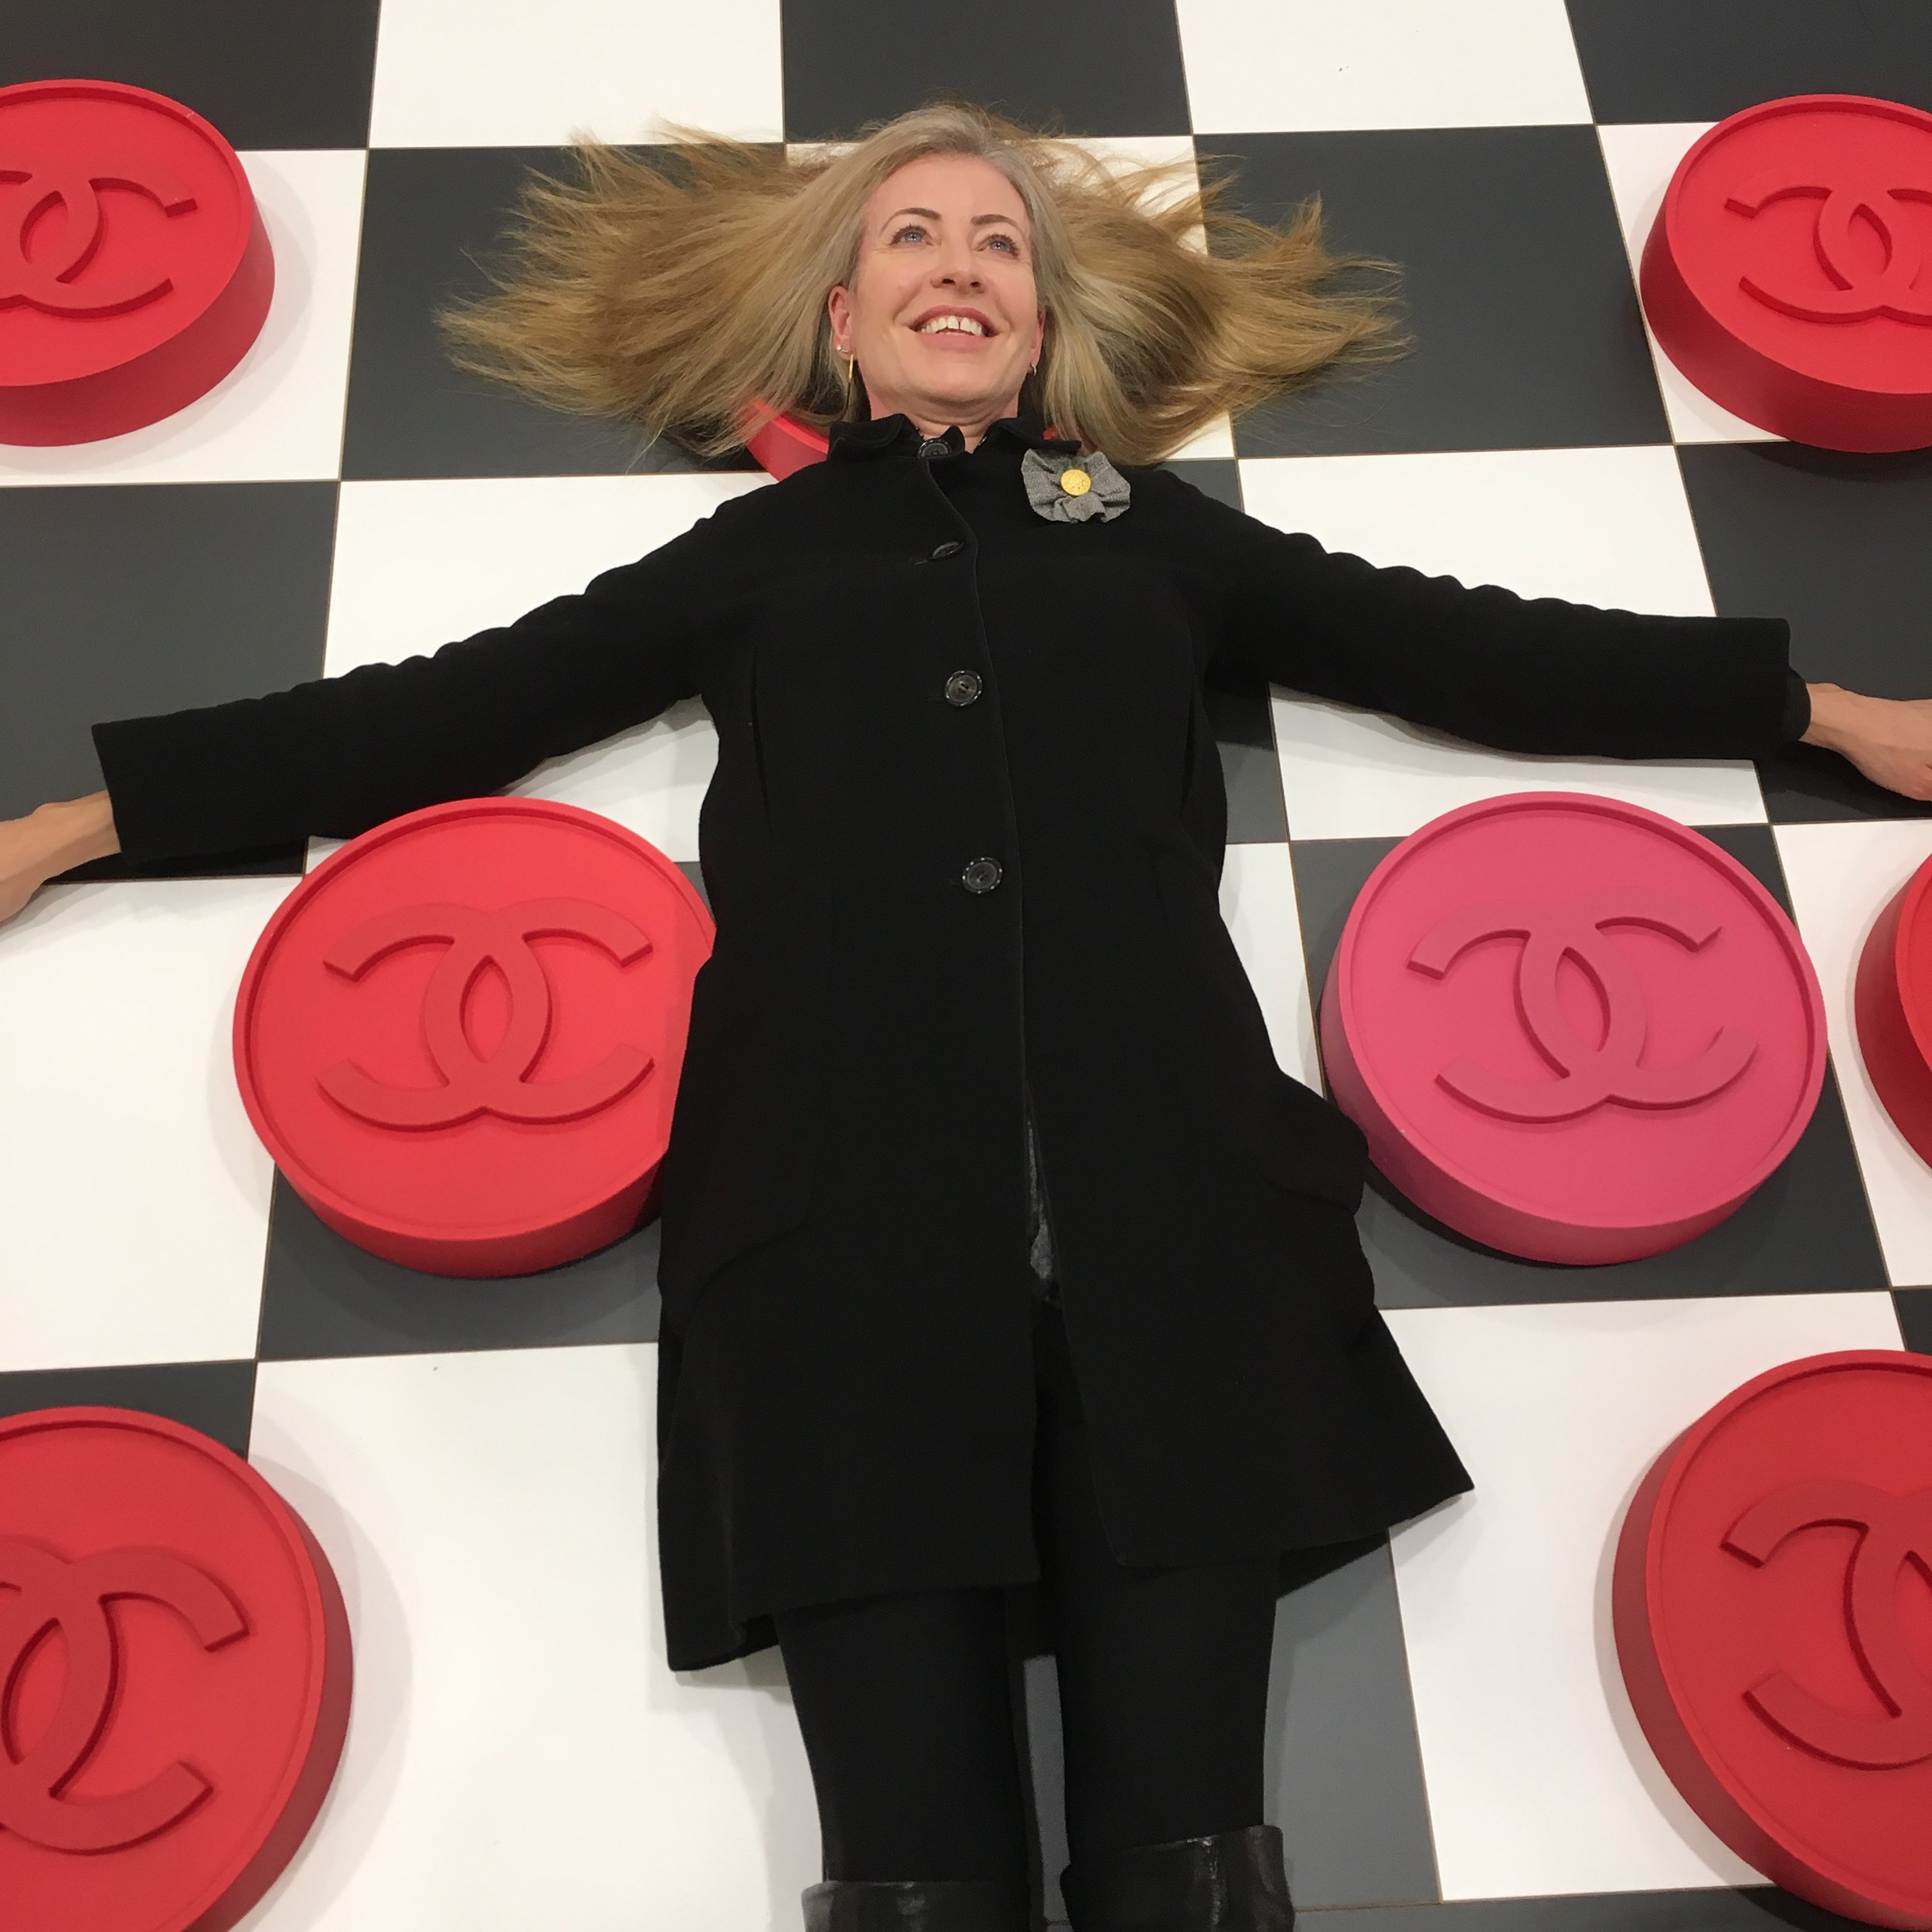 Couldn't resist playing around with the giant Chanel checkerboard at the launch